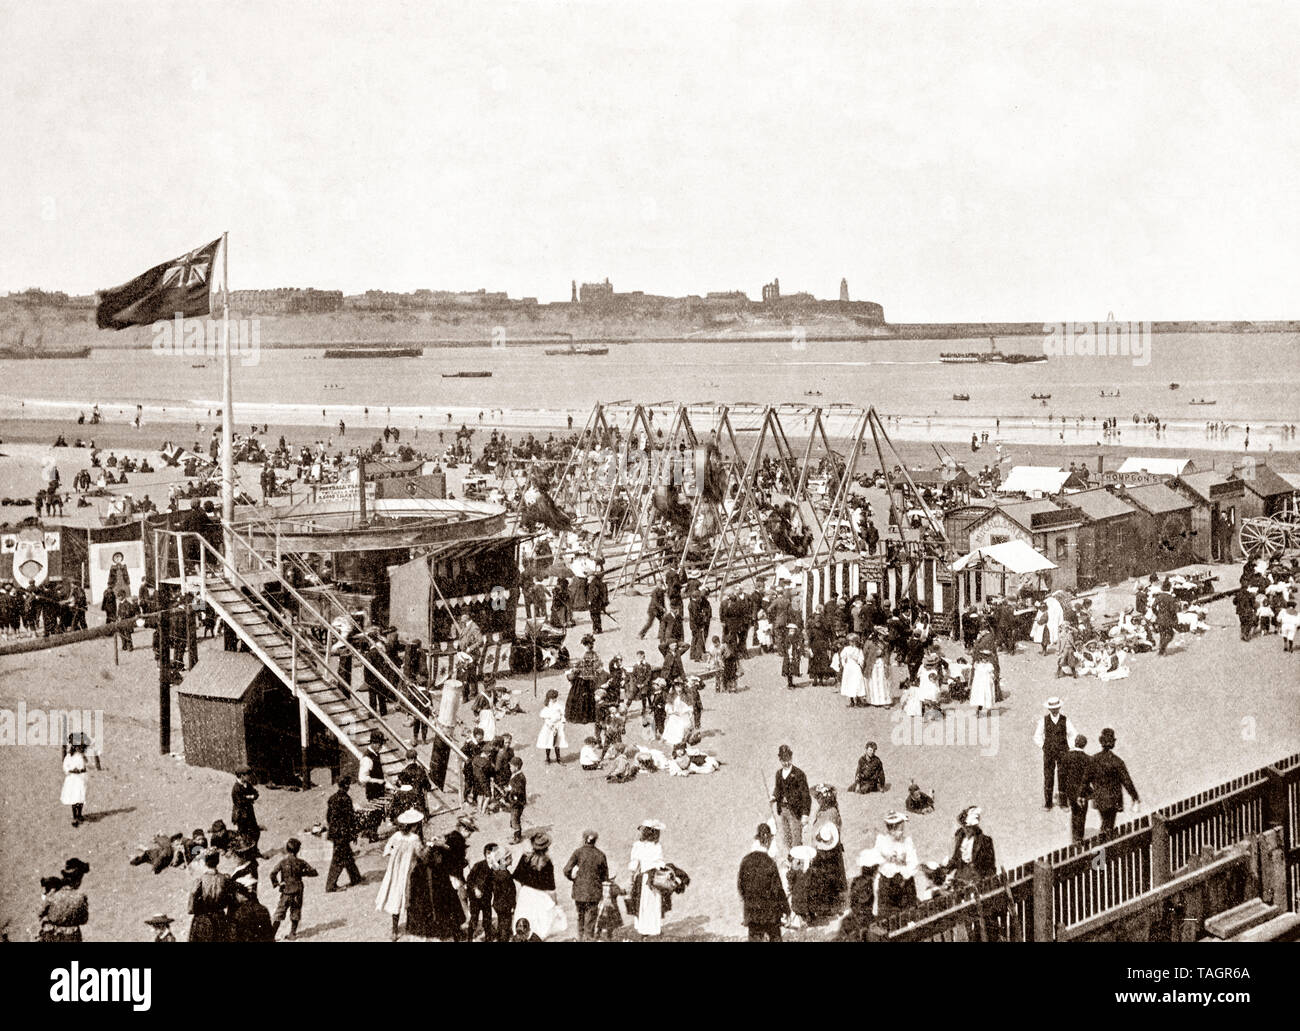 A late 19th Century view of fair ground attractions on the beach in South Shields, an industrial coastal town County Durham, in the North East of England. Located at the mouth of the River Tyne in became a popular tourist resort towards the end of the century. - Stock Image